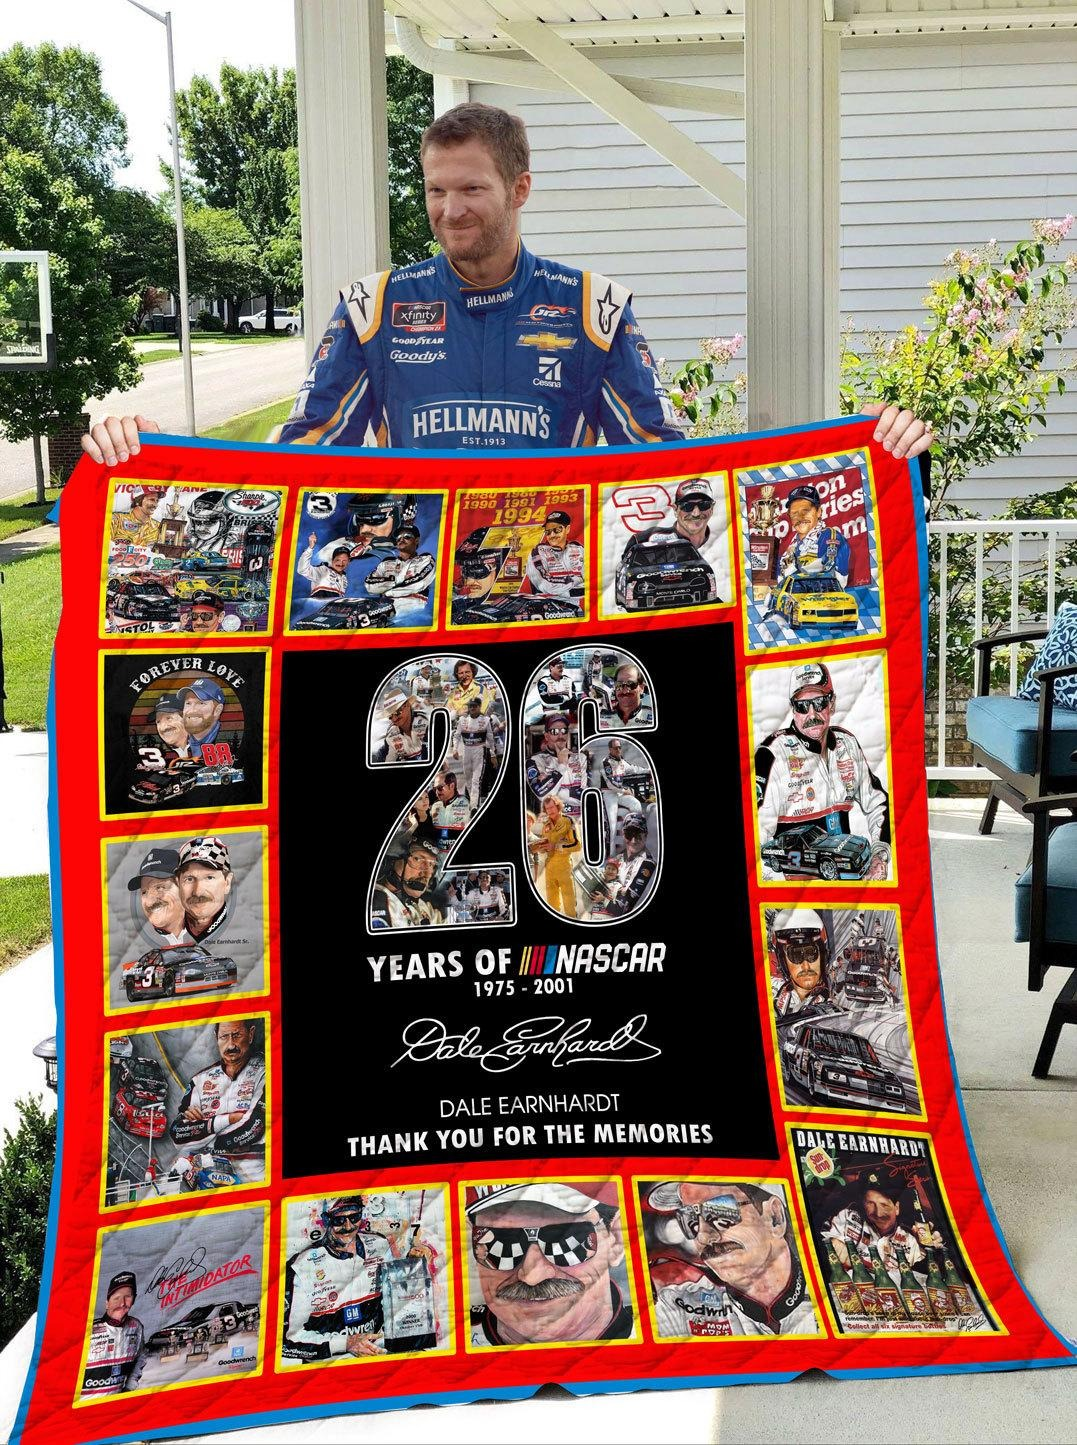 26 years of Nascar Dale Earnhardt quilt